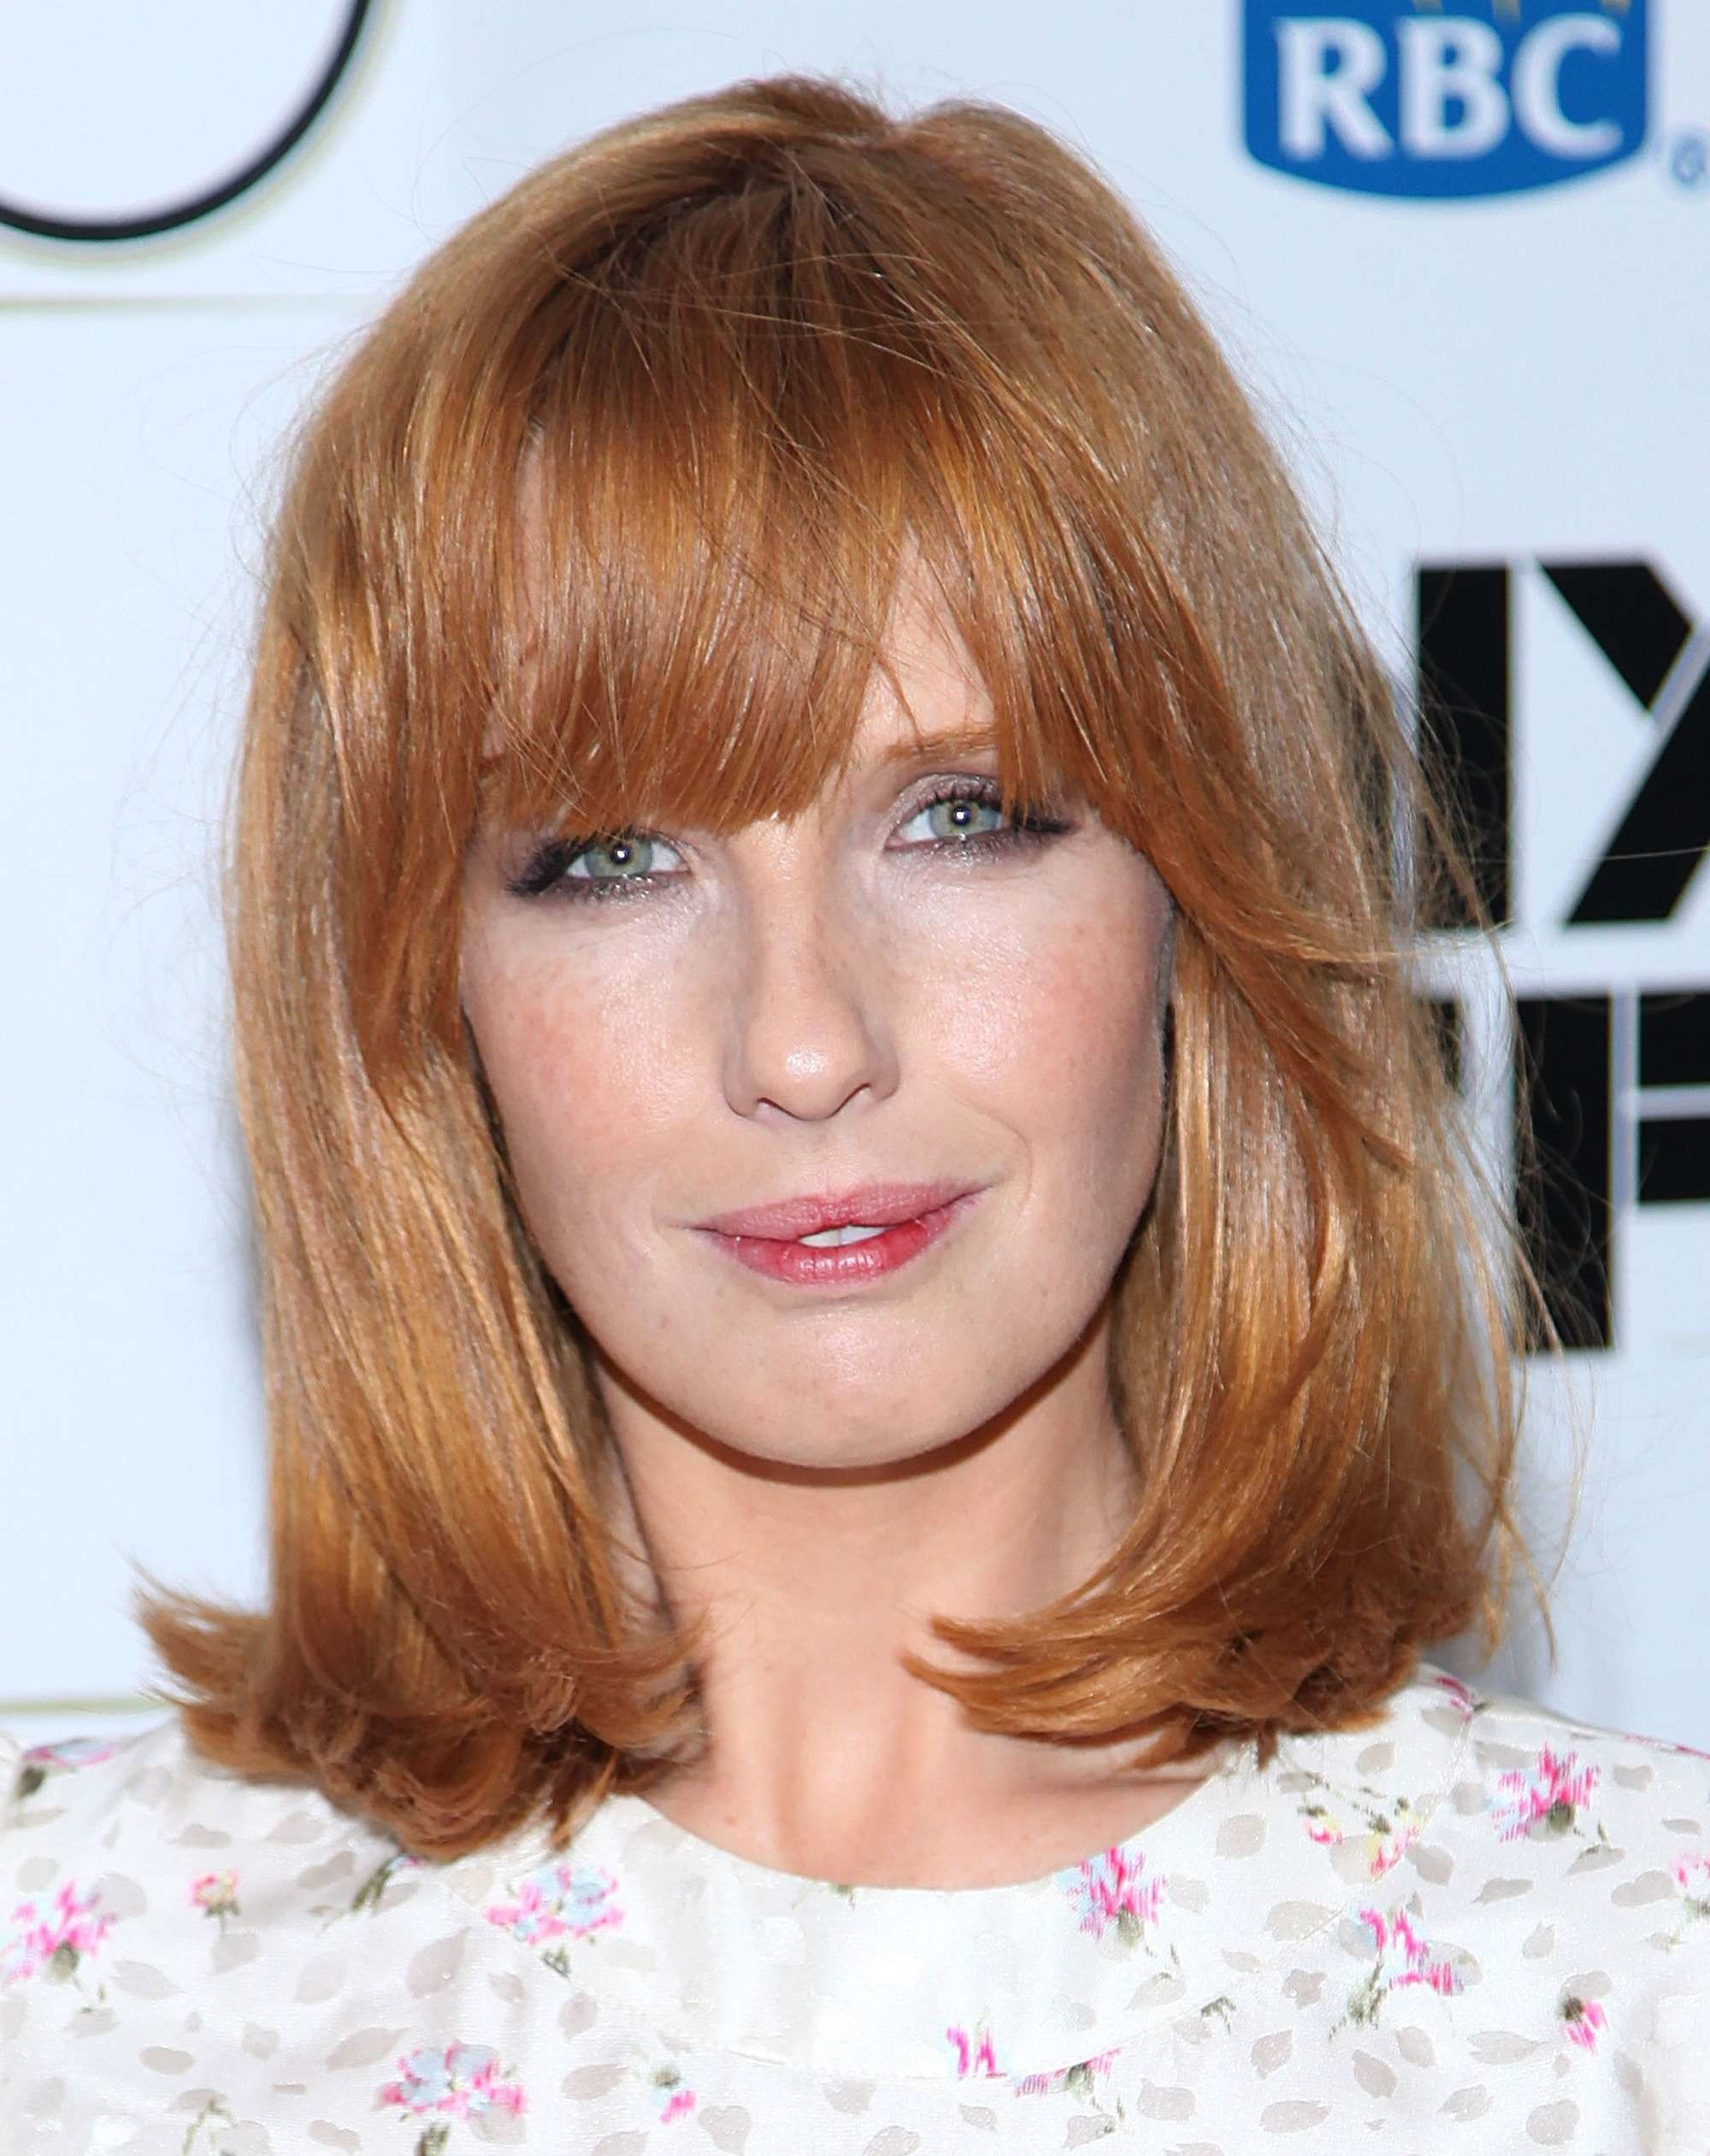 The Best Redheads The Best Haircut For Your Shape Face Pictures